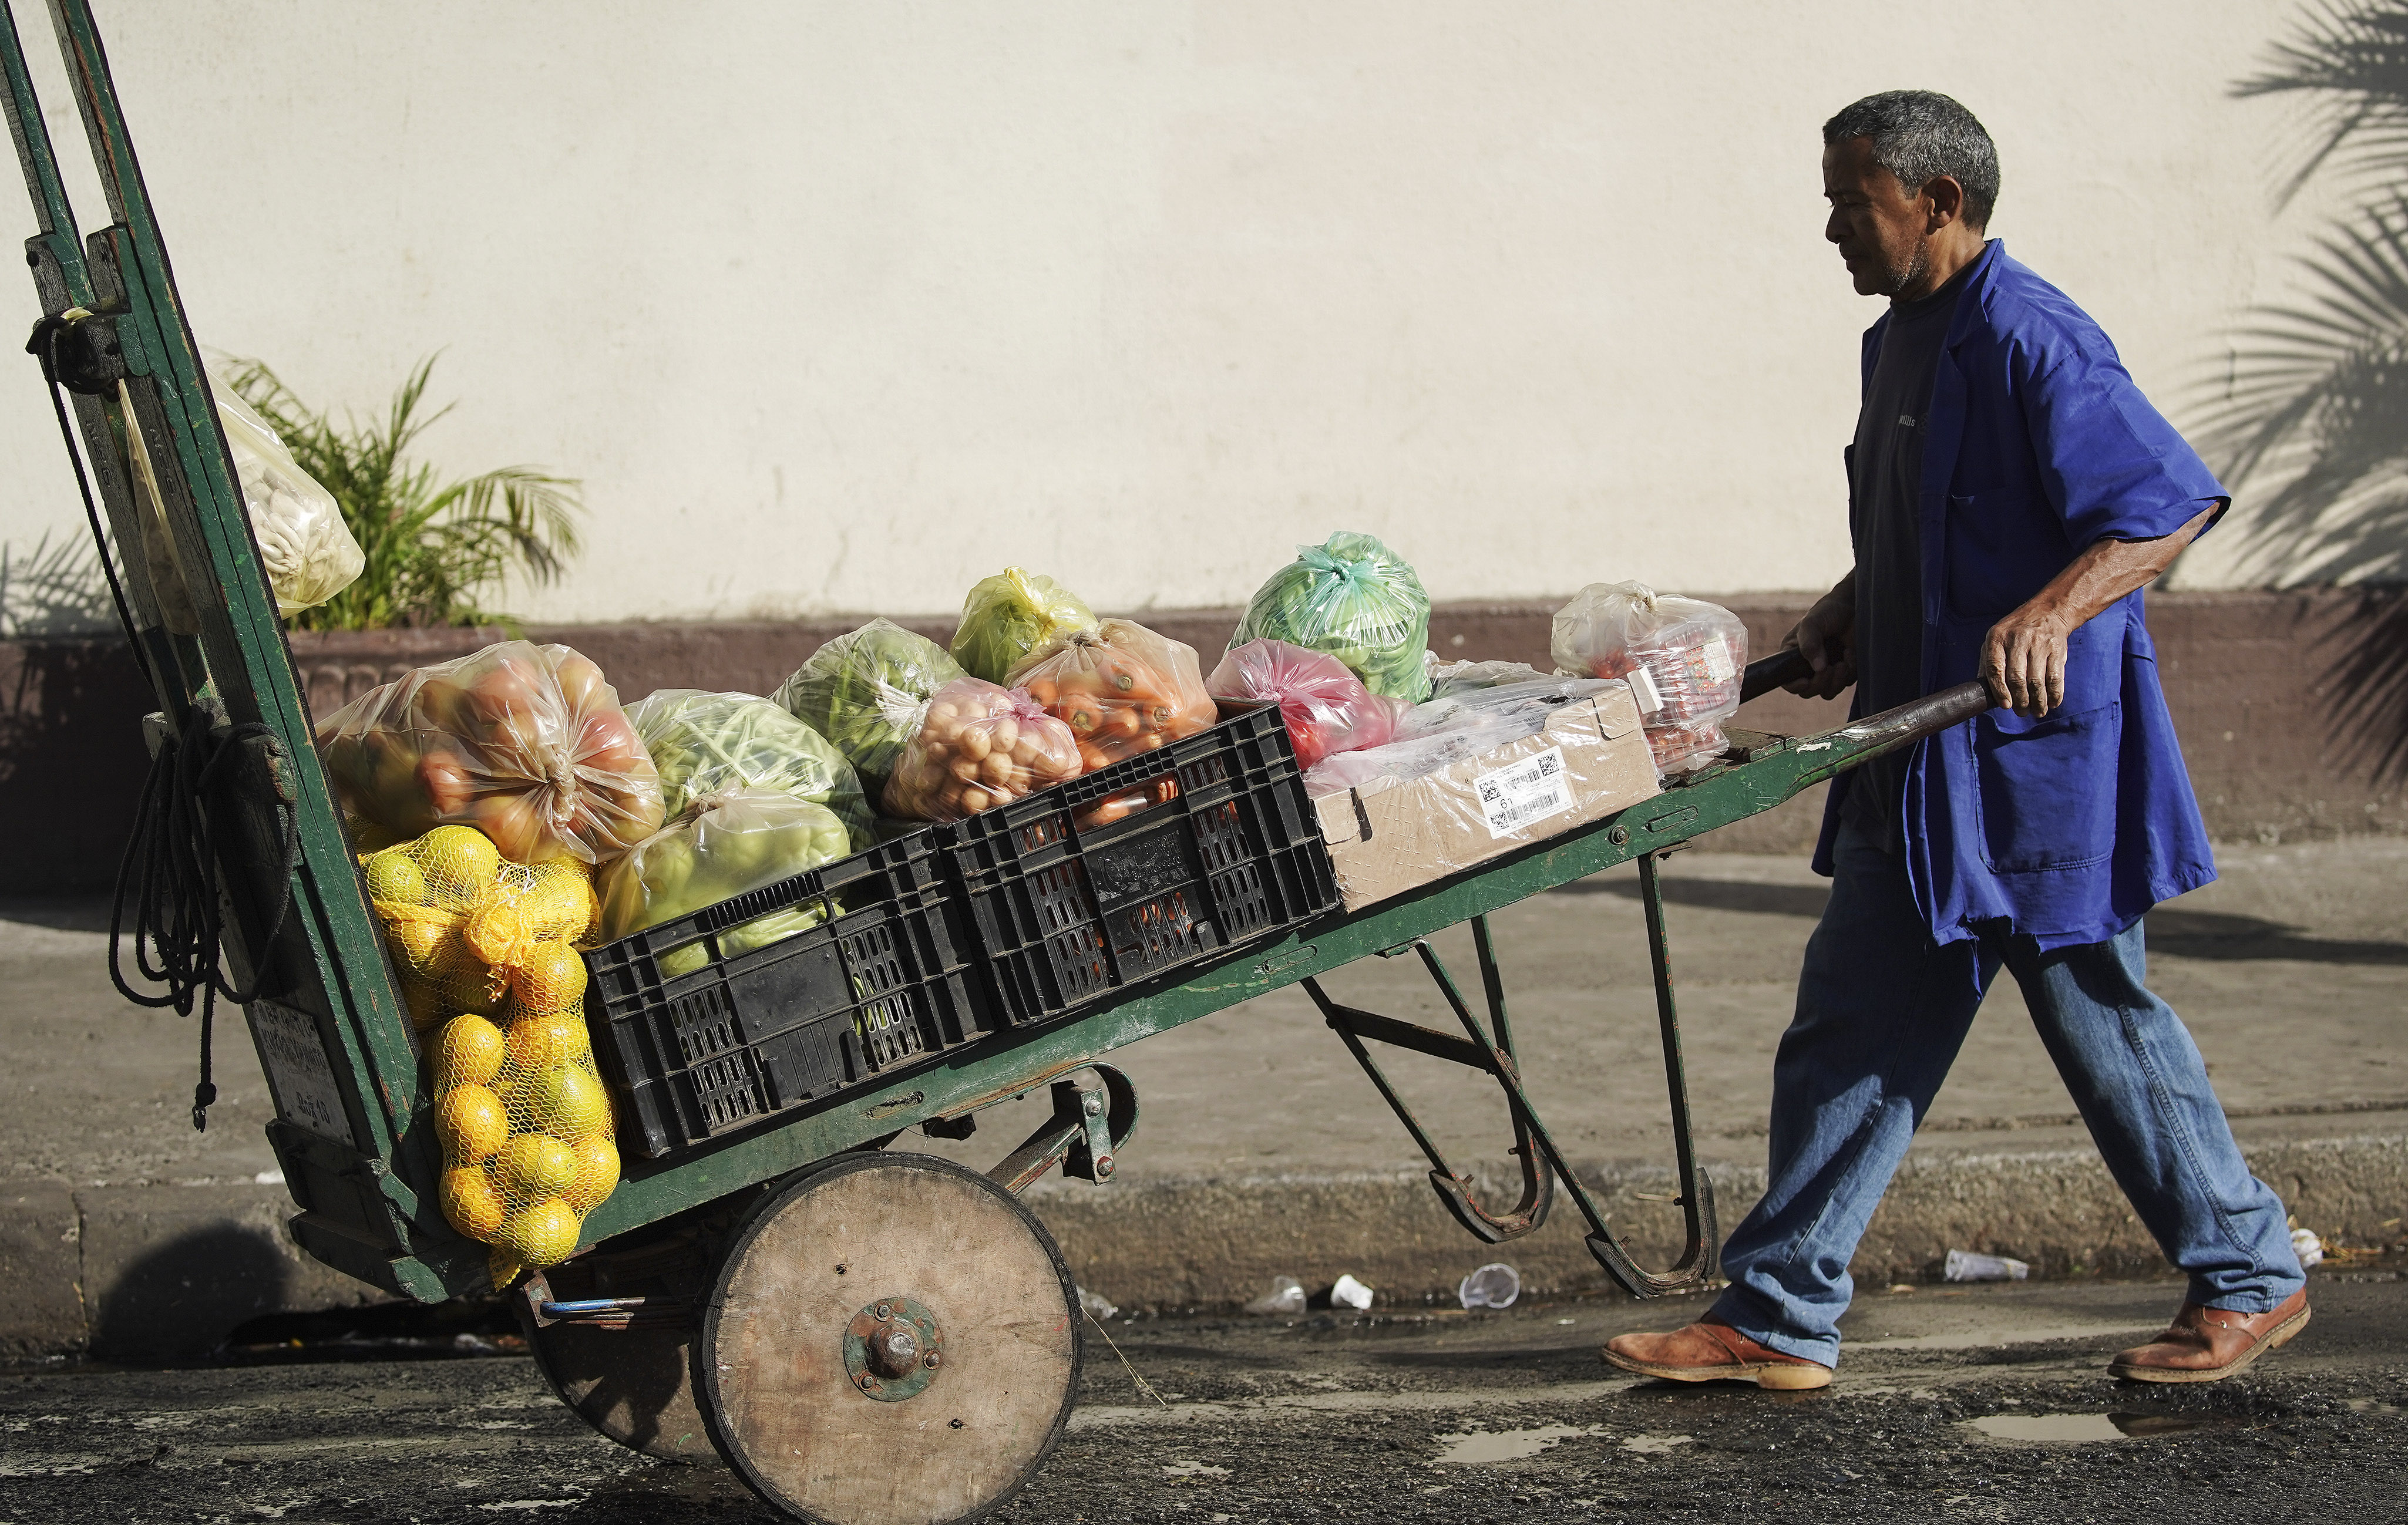 A vendor sells fruit on the street in Sao Paulo, Brazil, on Aug. 31, 2019.